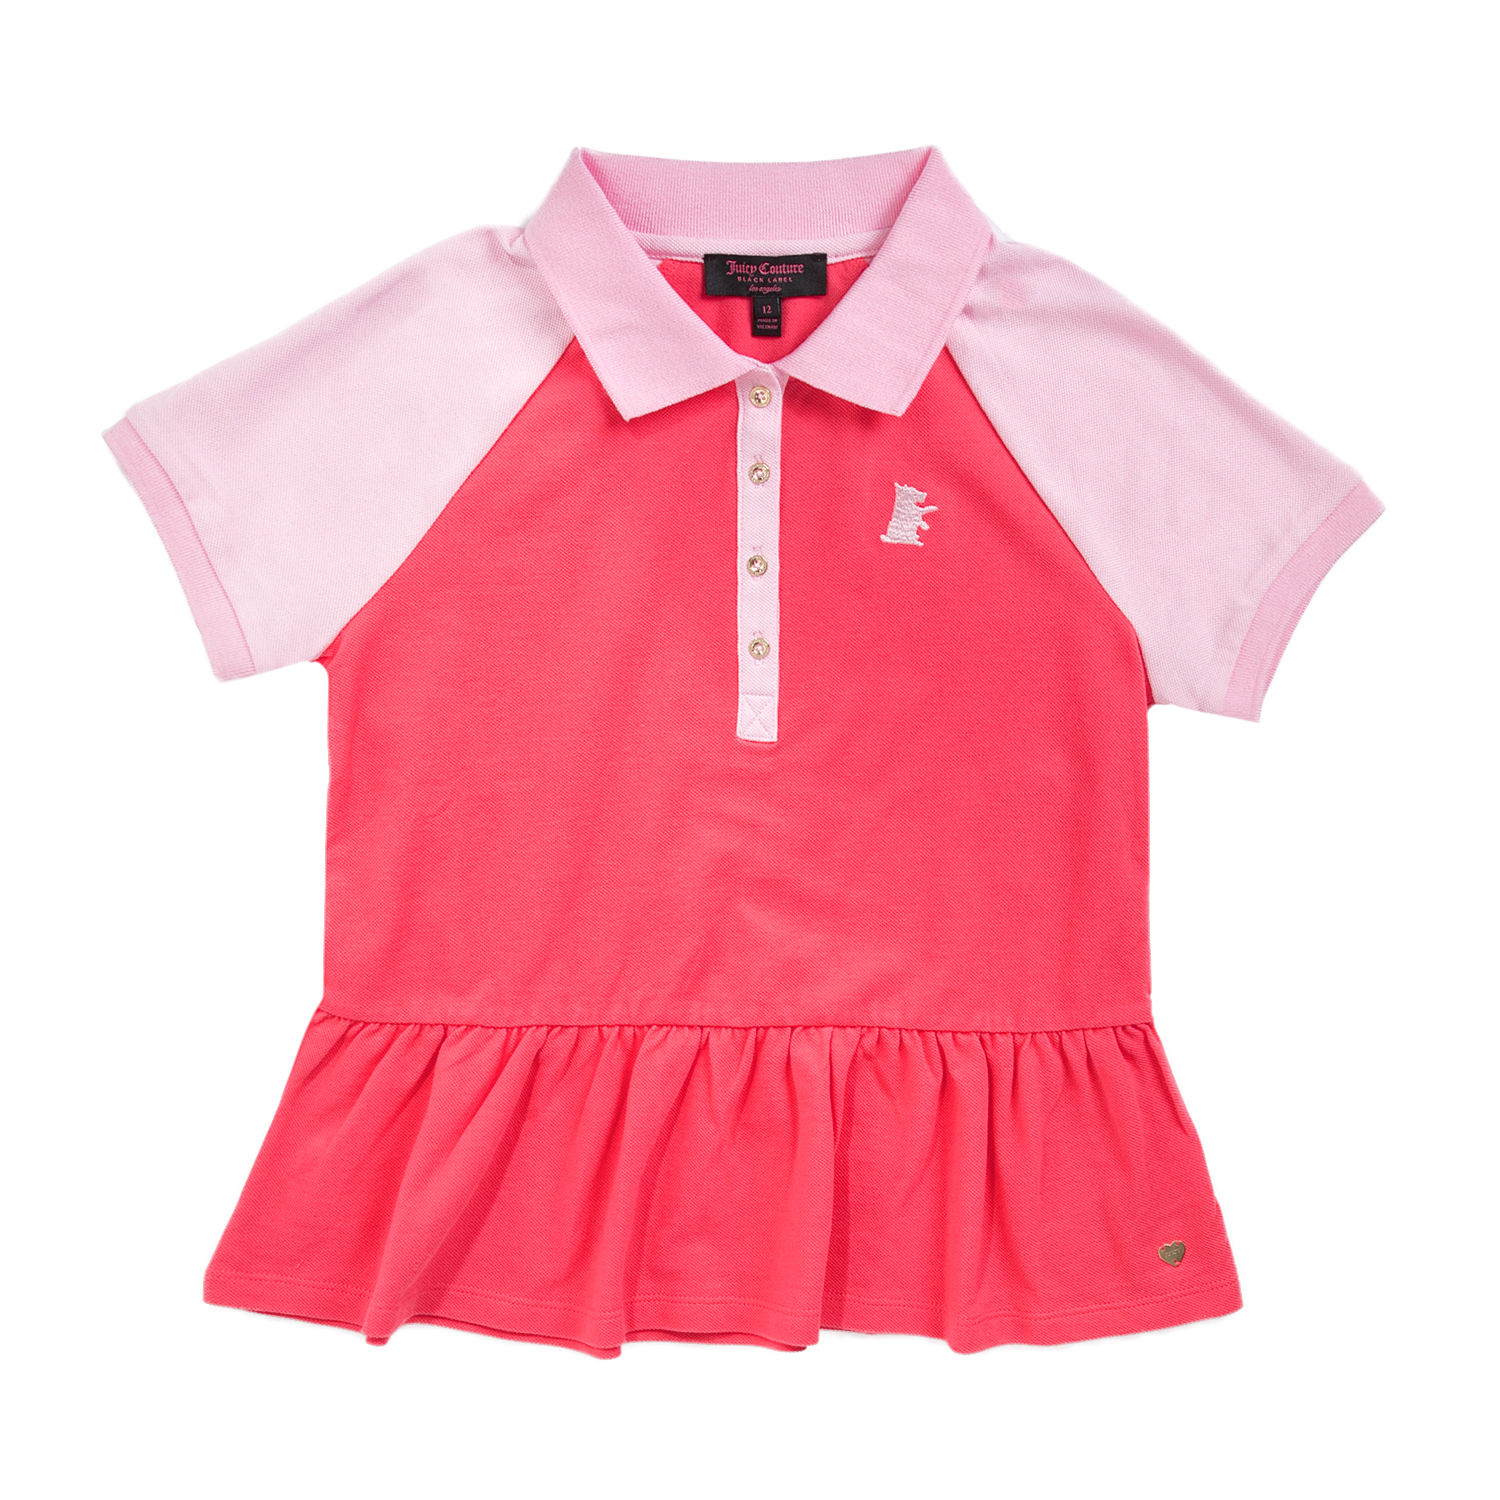 6a7c064daf2 JUICY COUTURE KIDS – Κοριτσίστικη πόλο μπλούζα JUICY COUTURE ροζ.  Κατάστημα: Factory Outlet